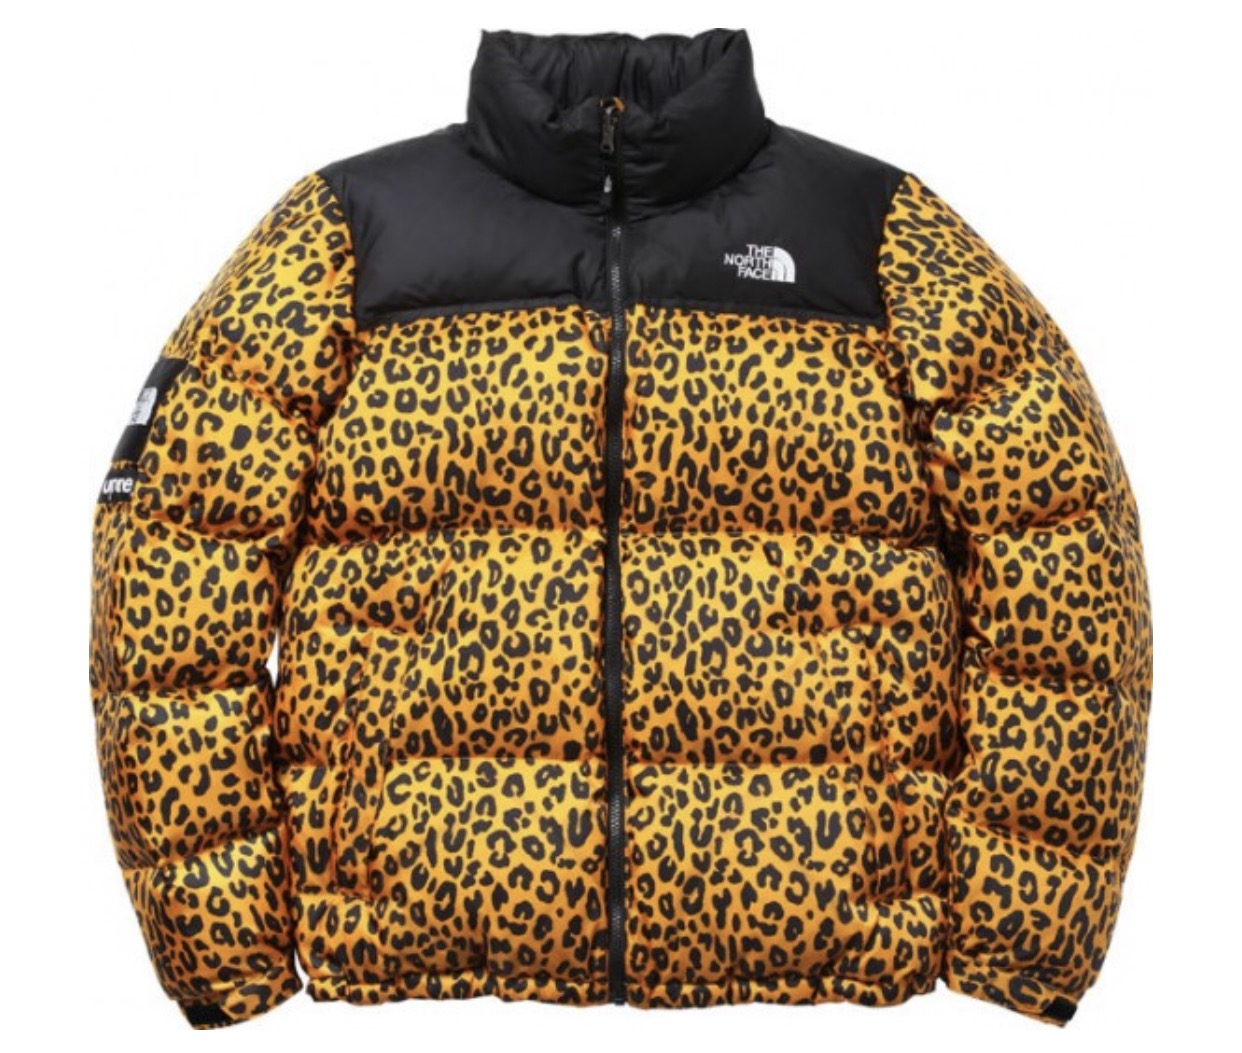 7a76f4603 Supreme North Face Nuptse Leopard Coat | Products | North face ...